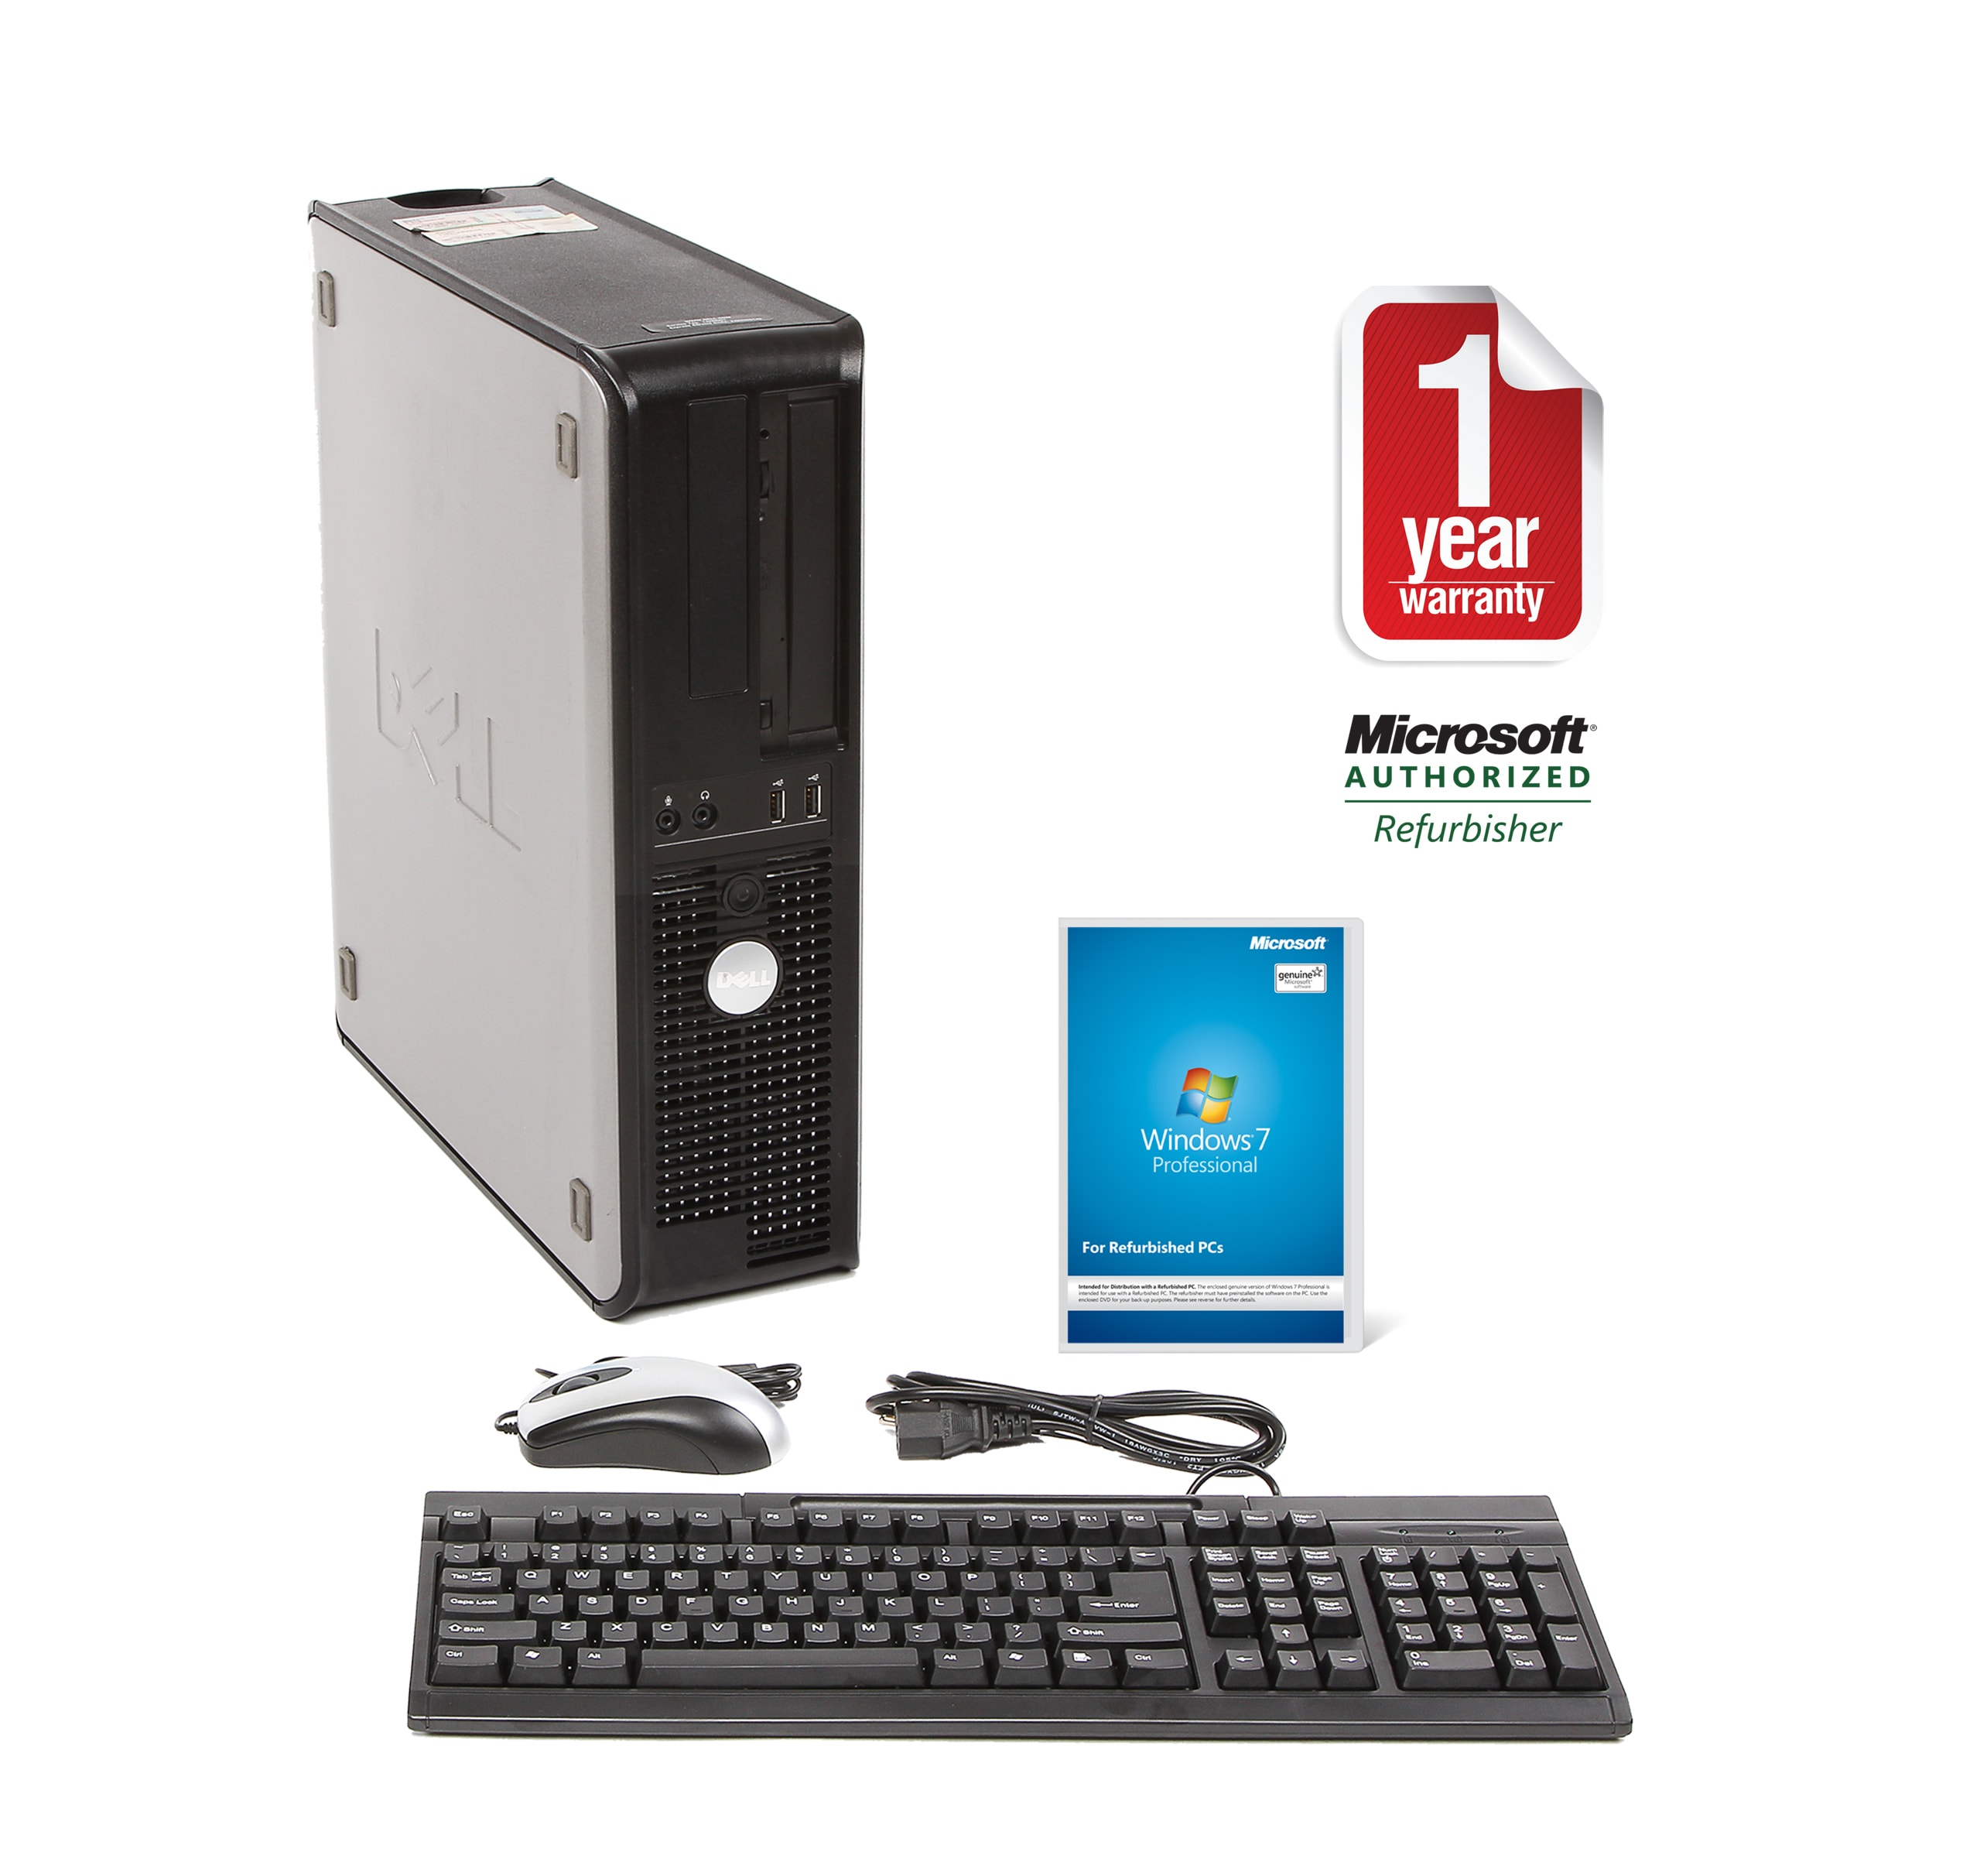 Dell OptiPlex 740 2.6GHz 1TB Desktop Computer (Refurbished)